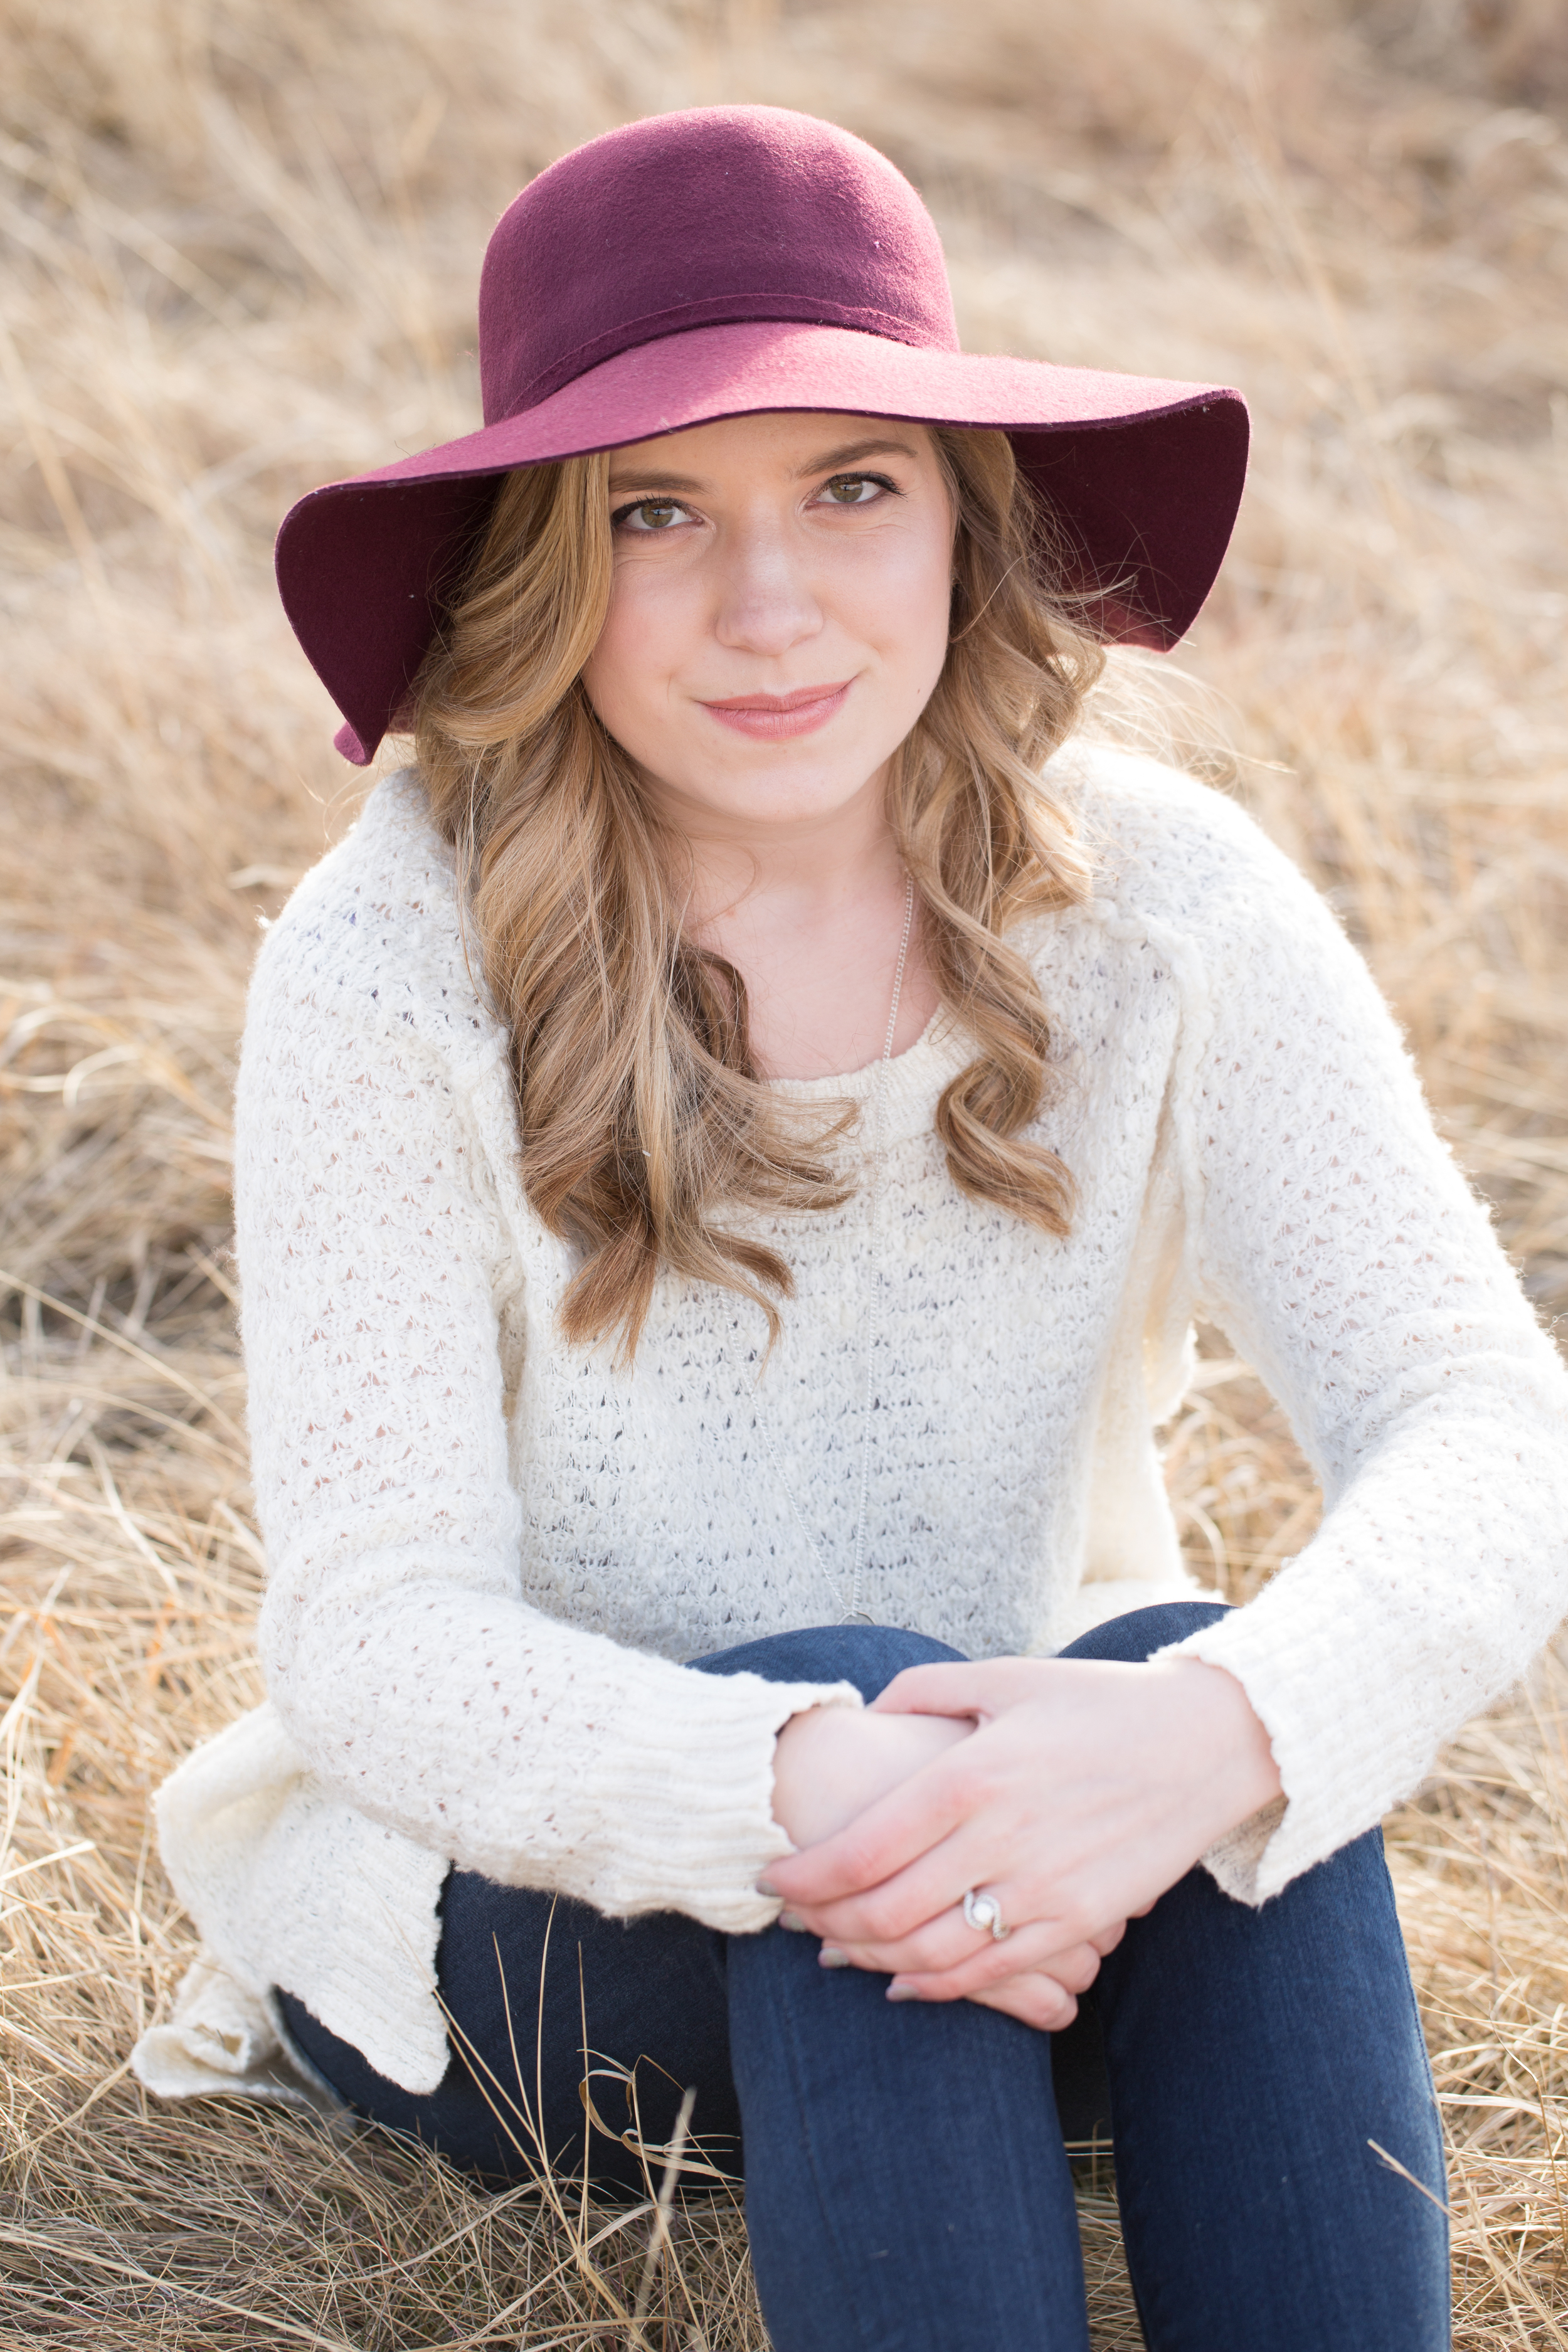 engagement outfit inspiration with cream sweater and red hat